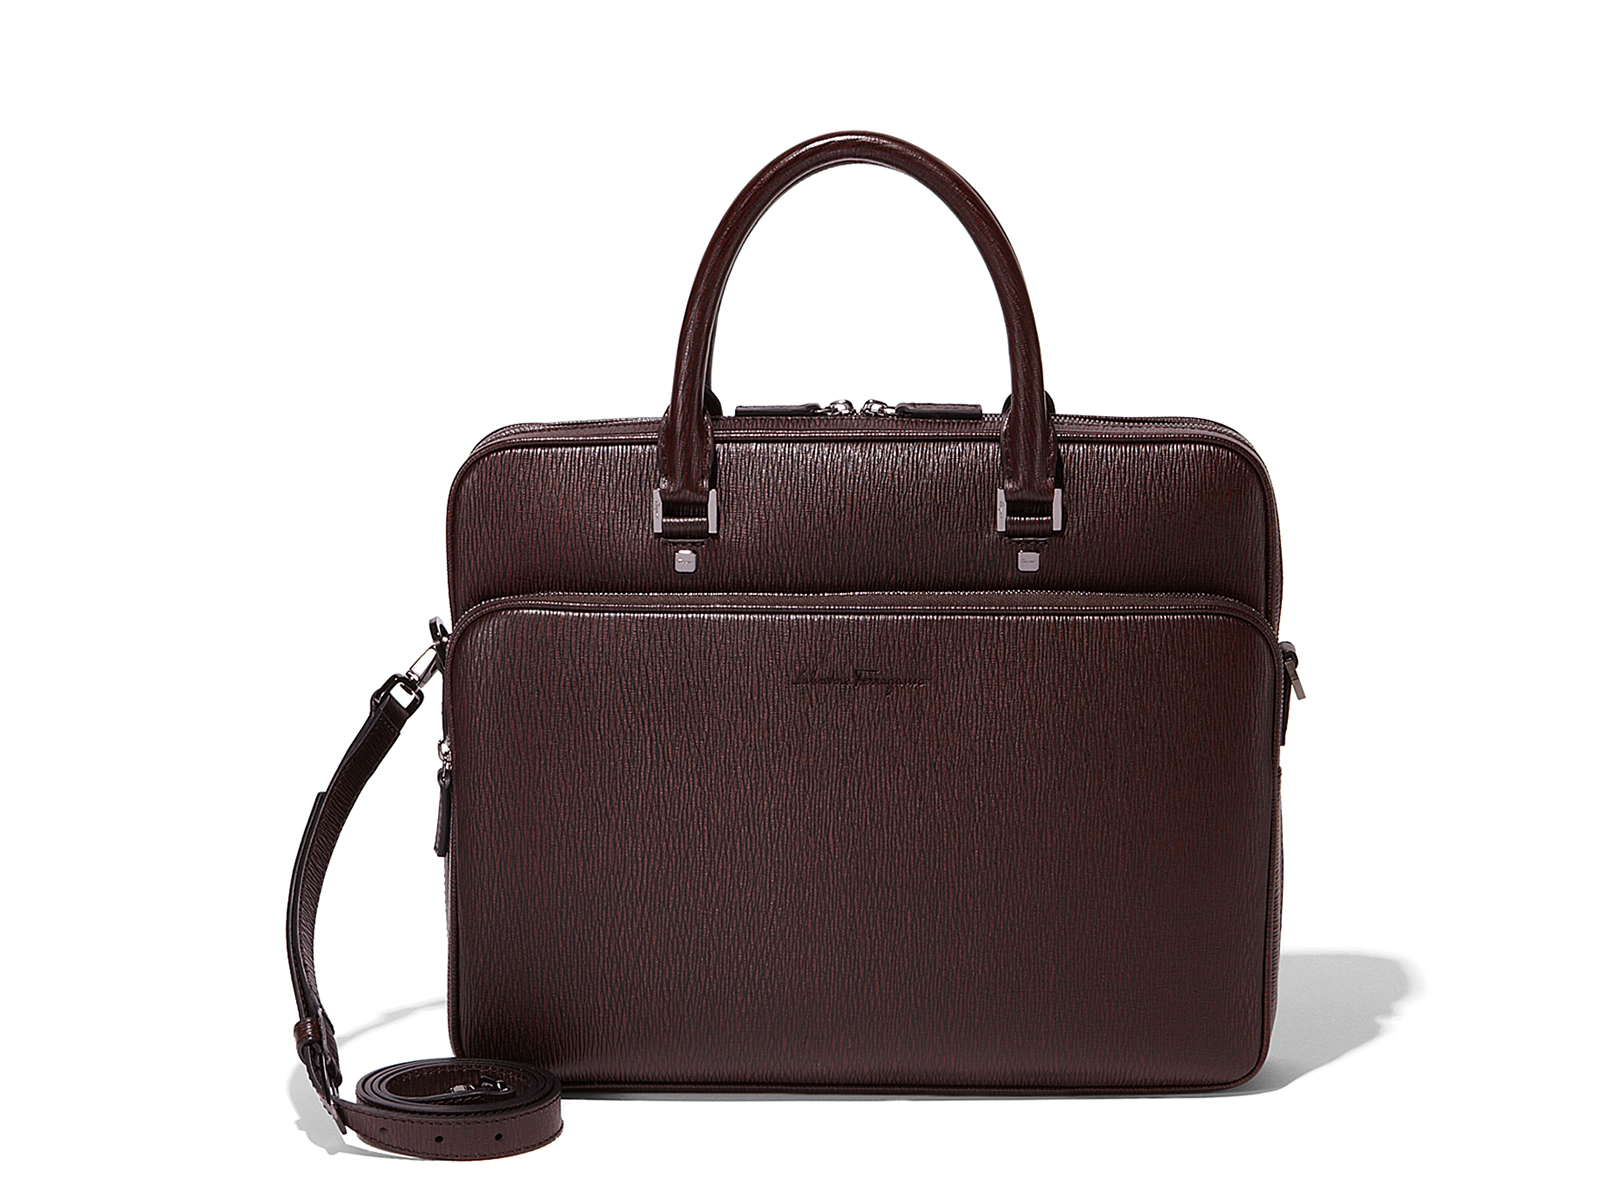 ... bag 1100 free shipping free shipping add to bag buy now from ferragamo